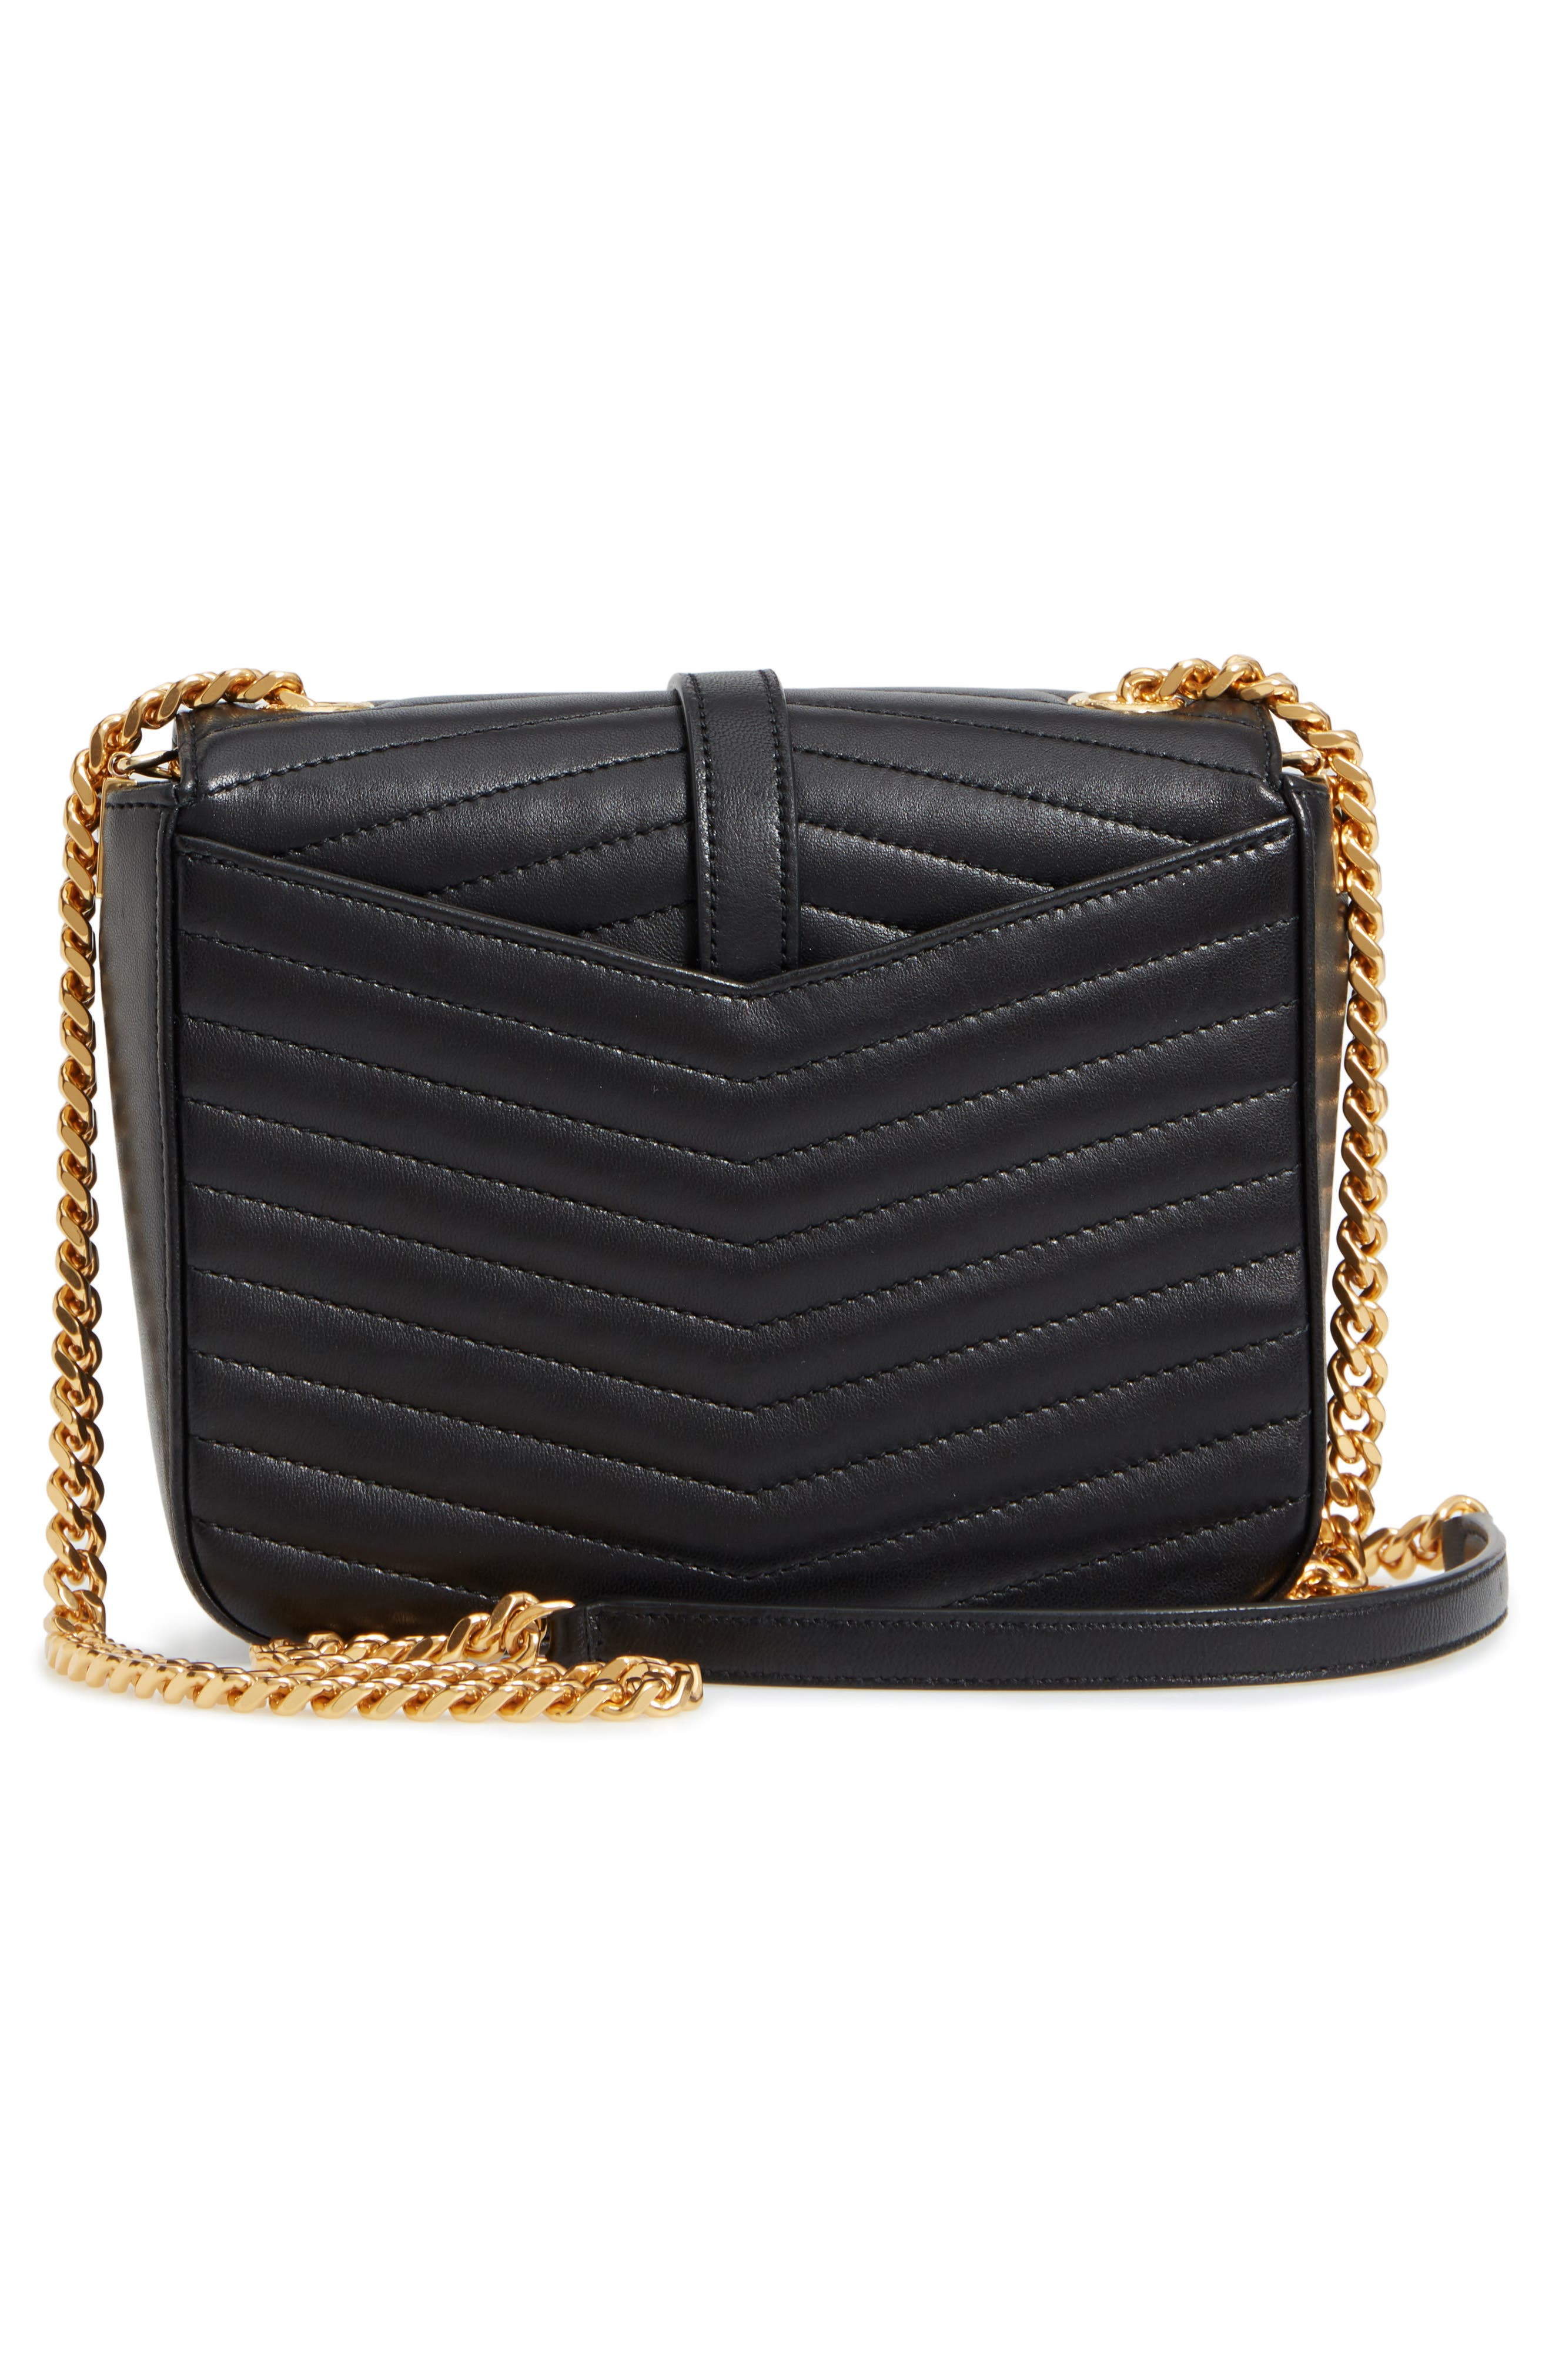 Montaigne Quilted Lambskin Crossbody Bag,                             Alternate thumbnail 3, color,                             NERO